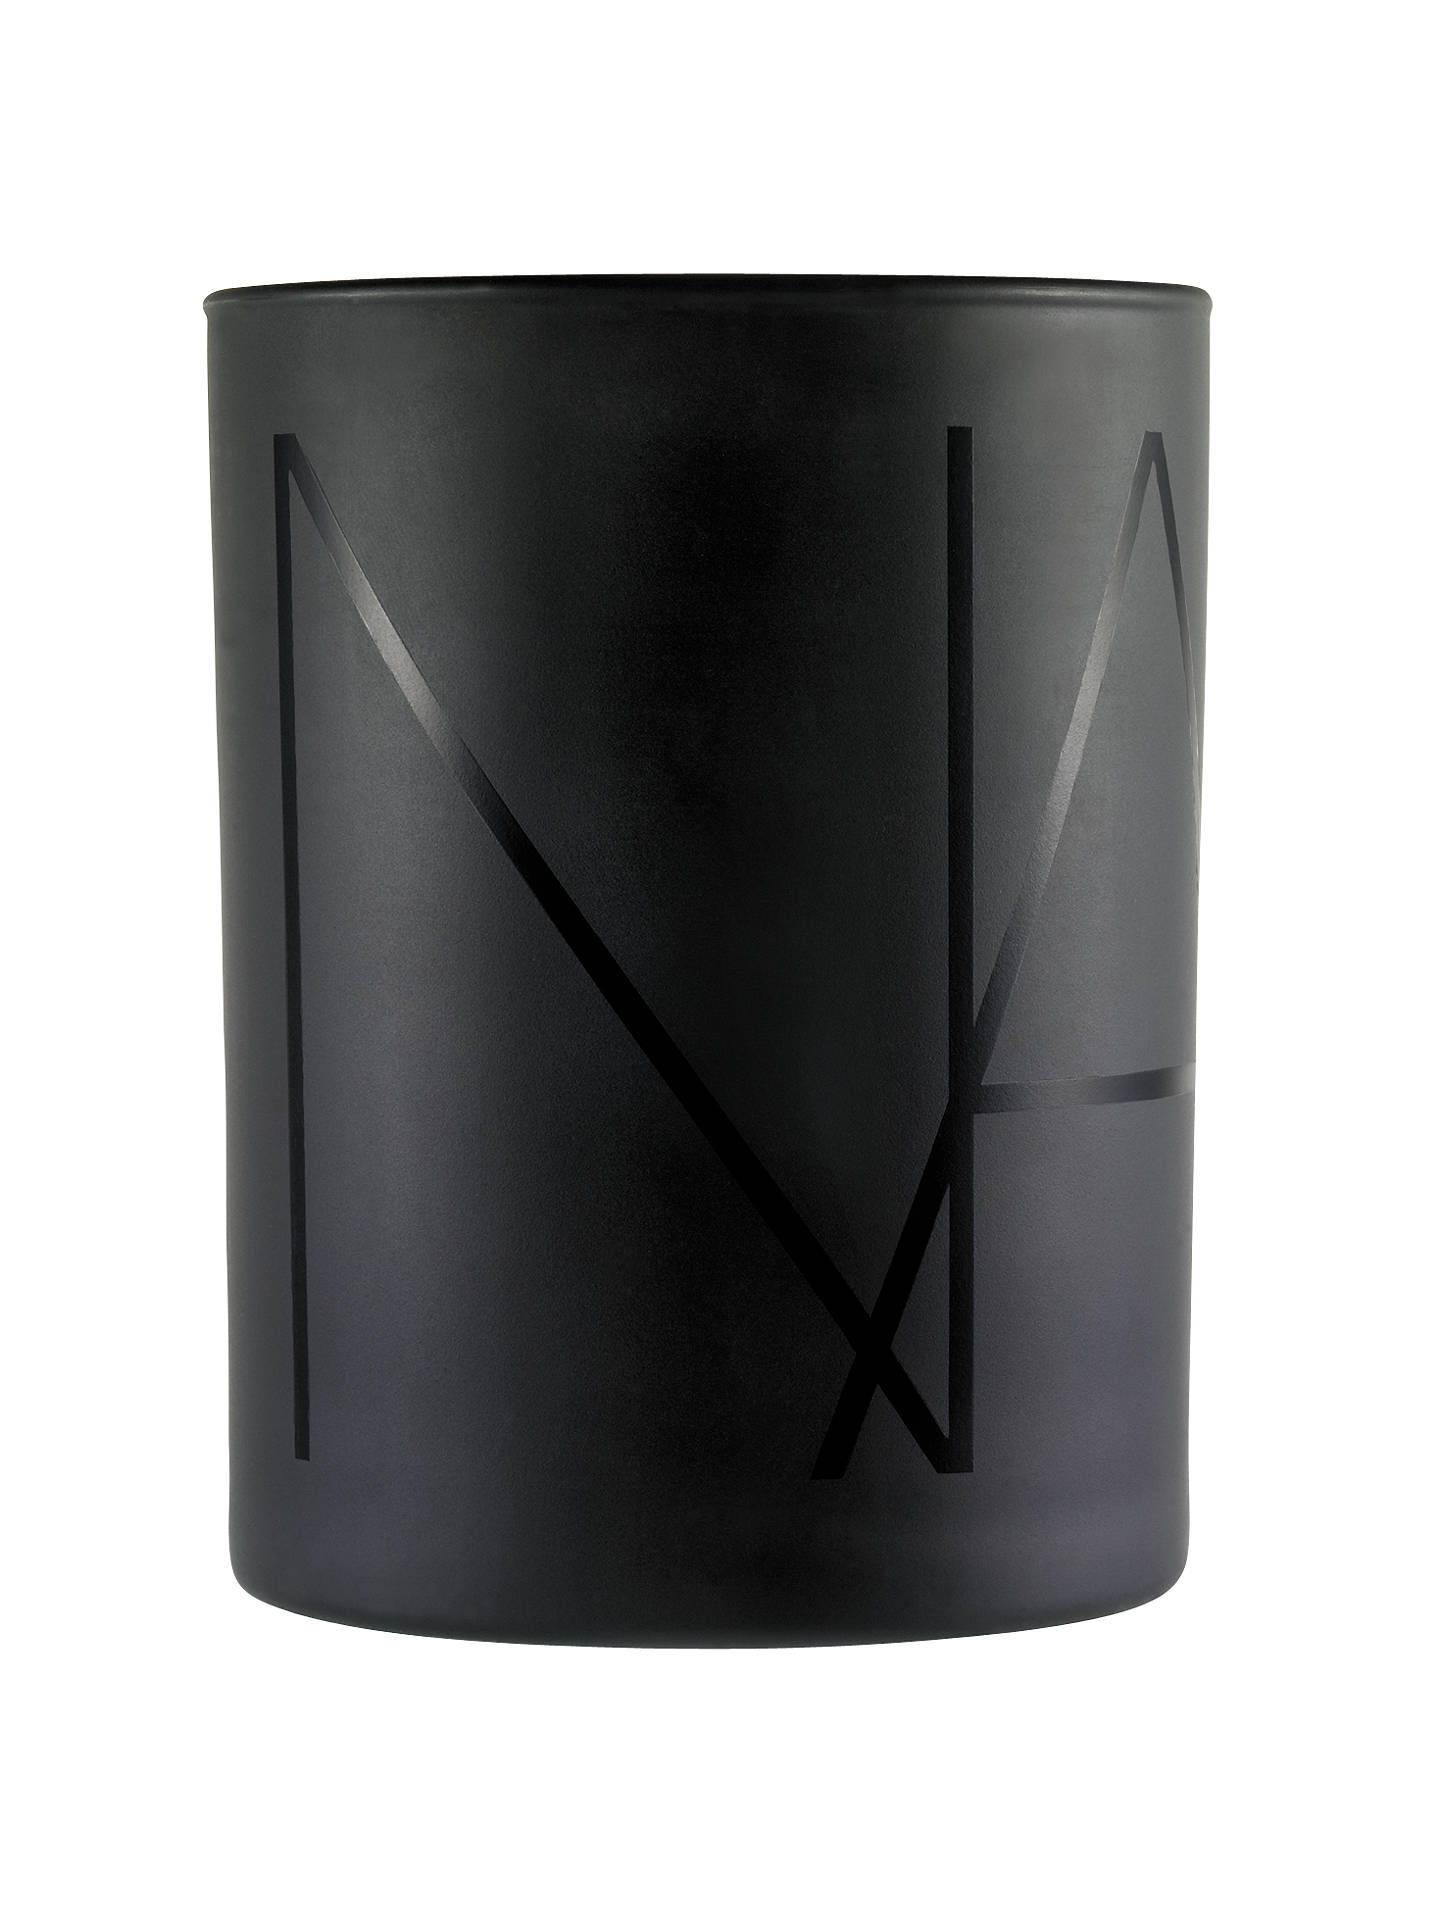 BuyNARS Scented Candles - Acapulco Online at johnlewis.com